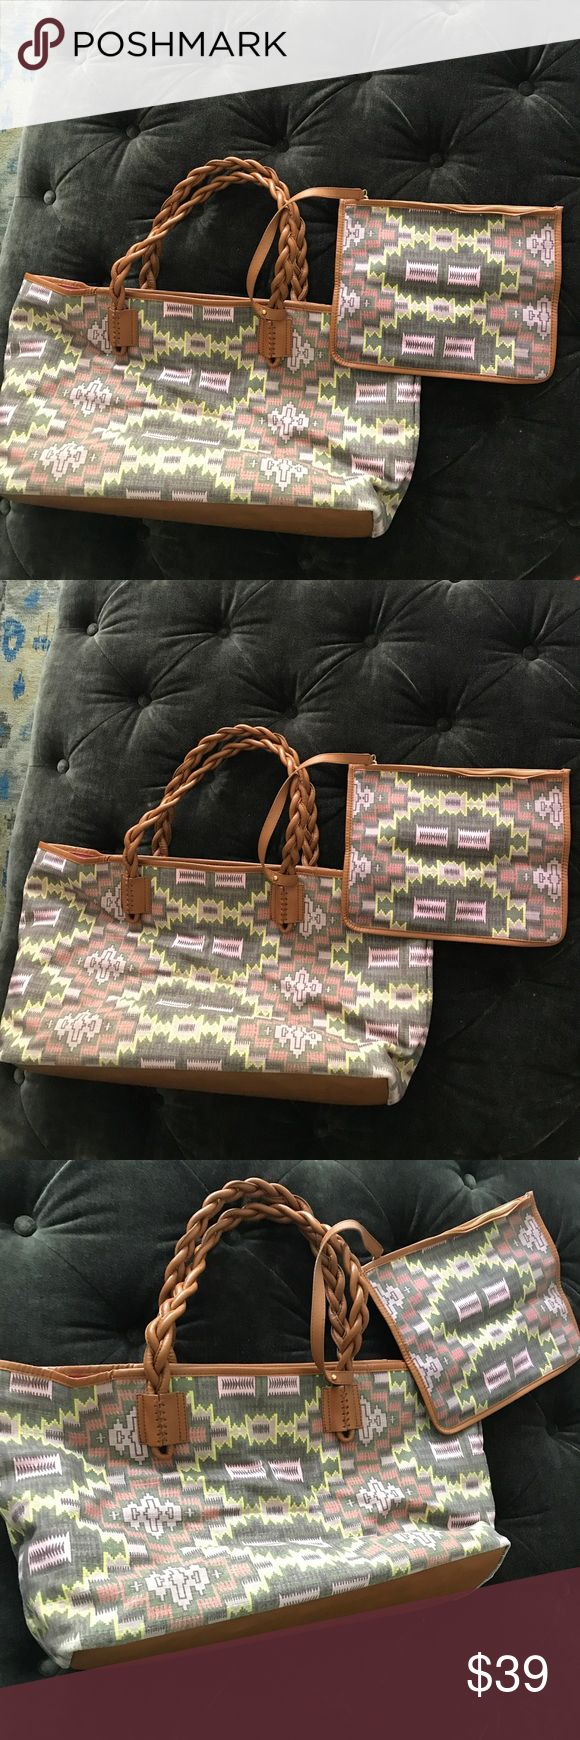 Beautiful leather & canvas tote w/cosmetic pouch Theodora & Callum by Stuart Weitzman Aztec print tote bag. Trimmed in tan leather with braided leather handles. Magnetic snap closure. Attached zippered cosmetic pouch. Bottom is also made of leather. Inside is lined in pink fabric. Great for the beach or when you need a larger bag. Great condition and very fun and unique. Dustbag included. Theodora & Callum Bags Totes